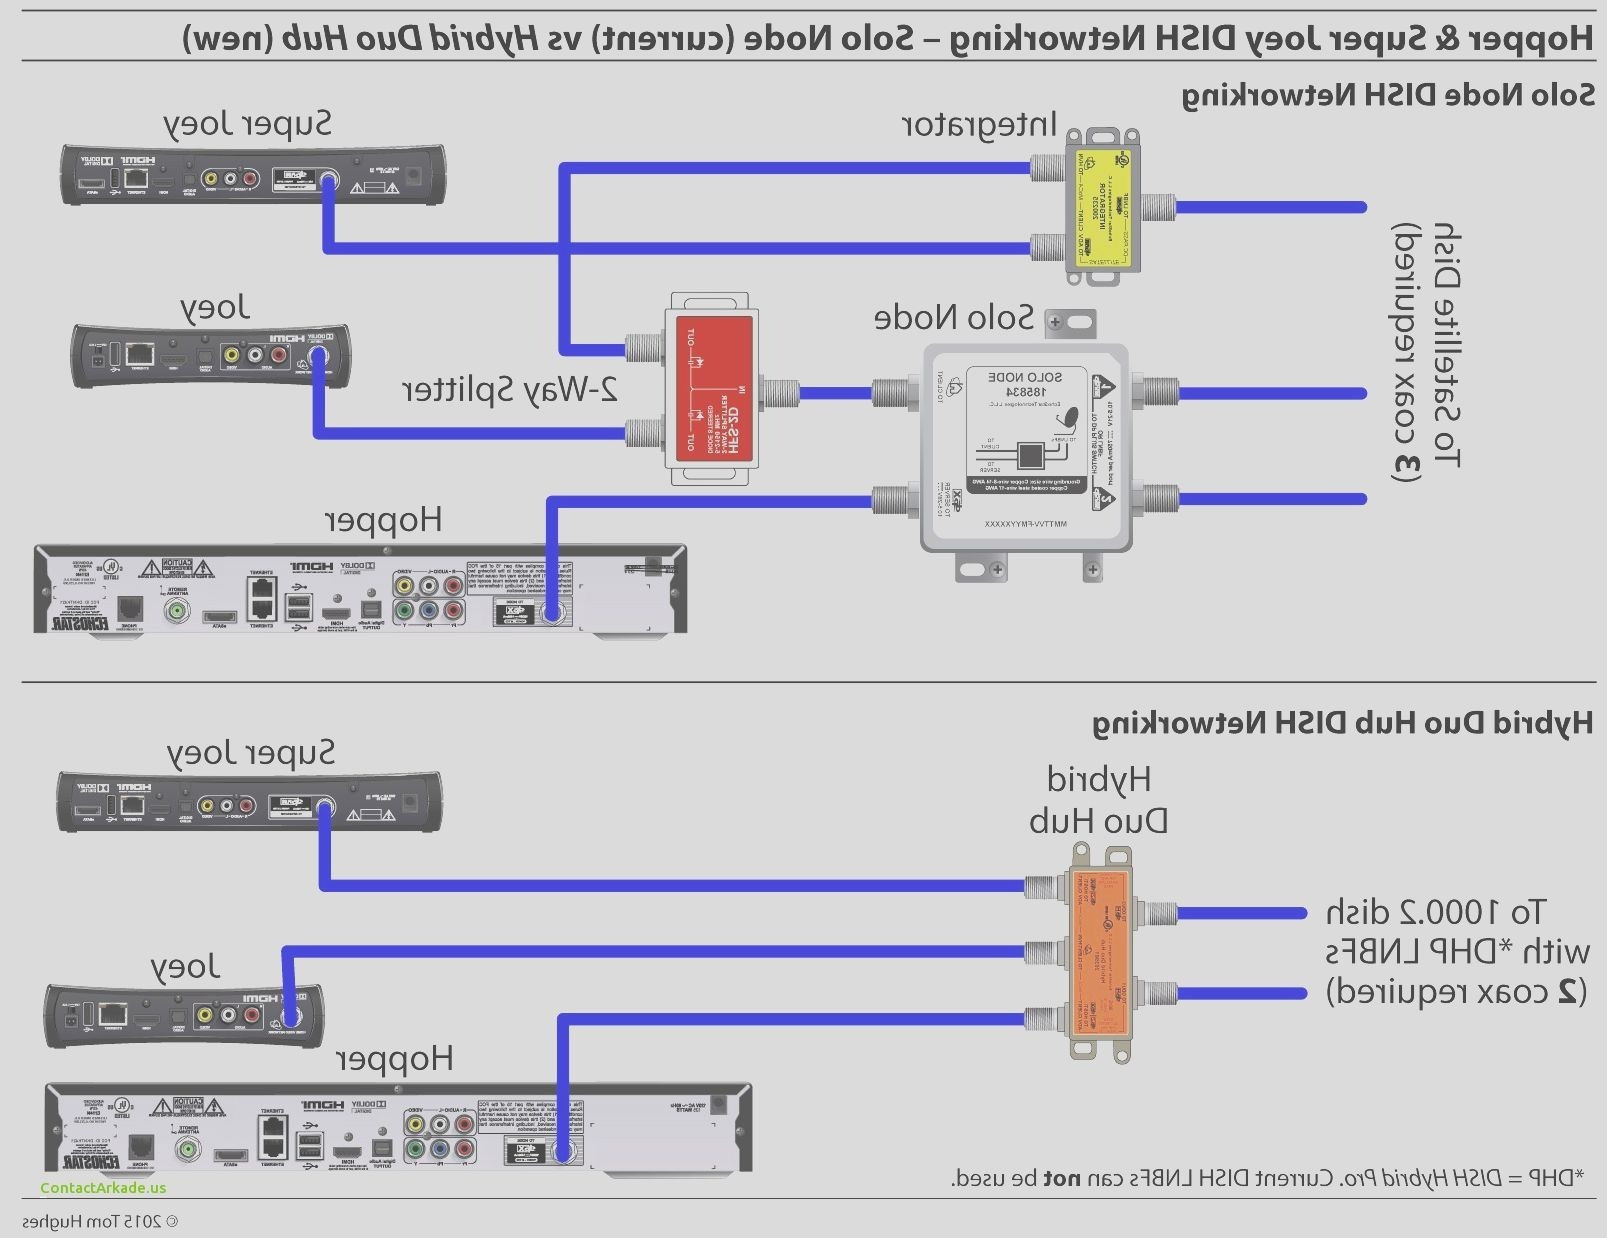 niles ir repeater wiring diagram Download-home network wiring diagram Download Wiring Diagram for Cat5 Ethernet Cable Inspirationa Wiring Diagram for DOWNLOAD Wiring Diagram 8-e